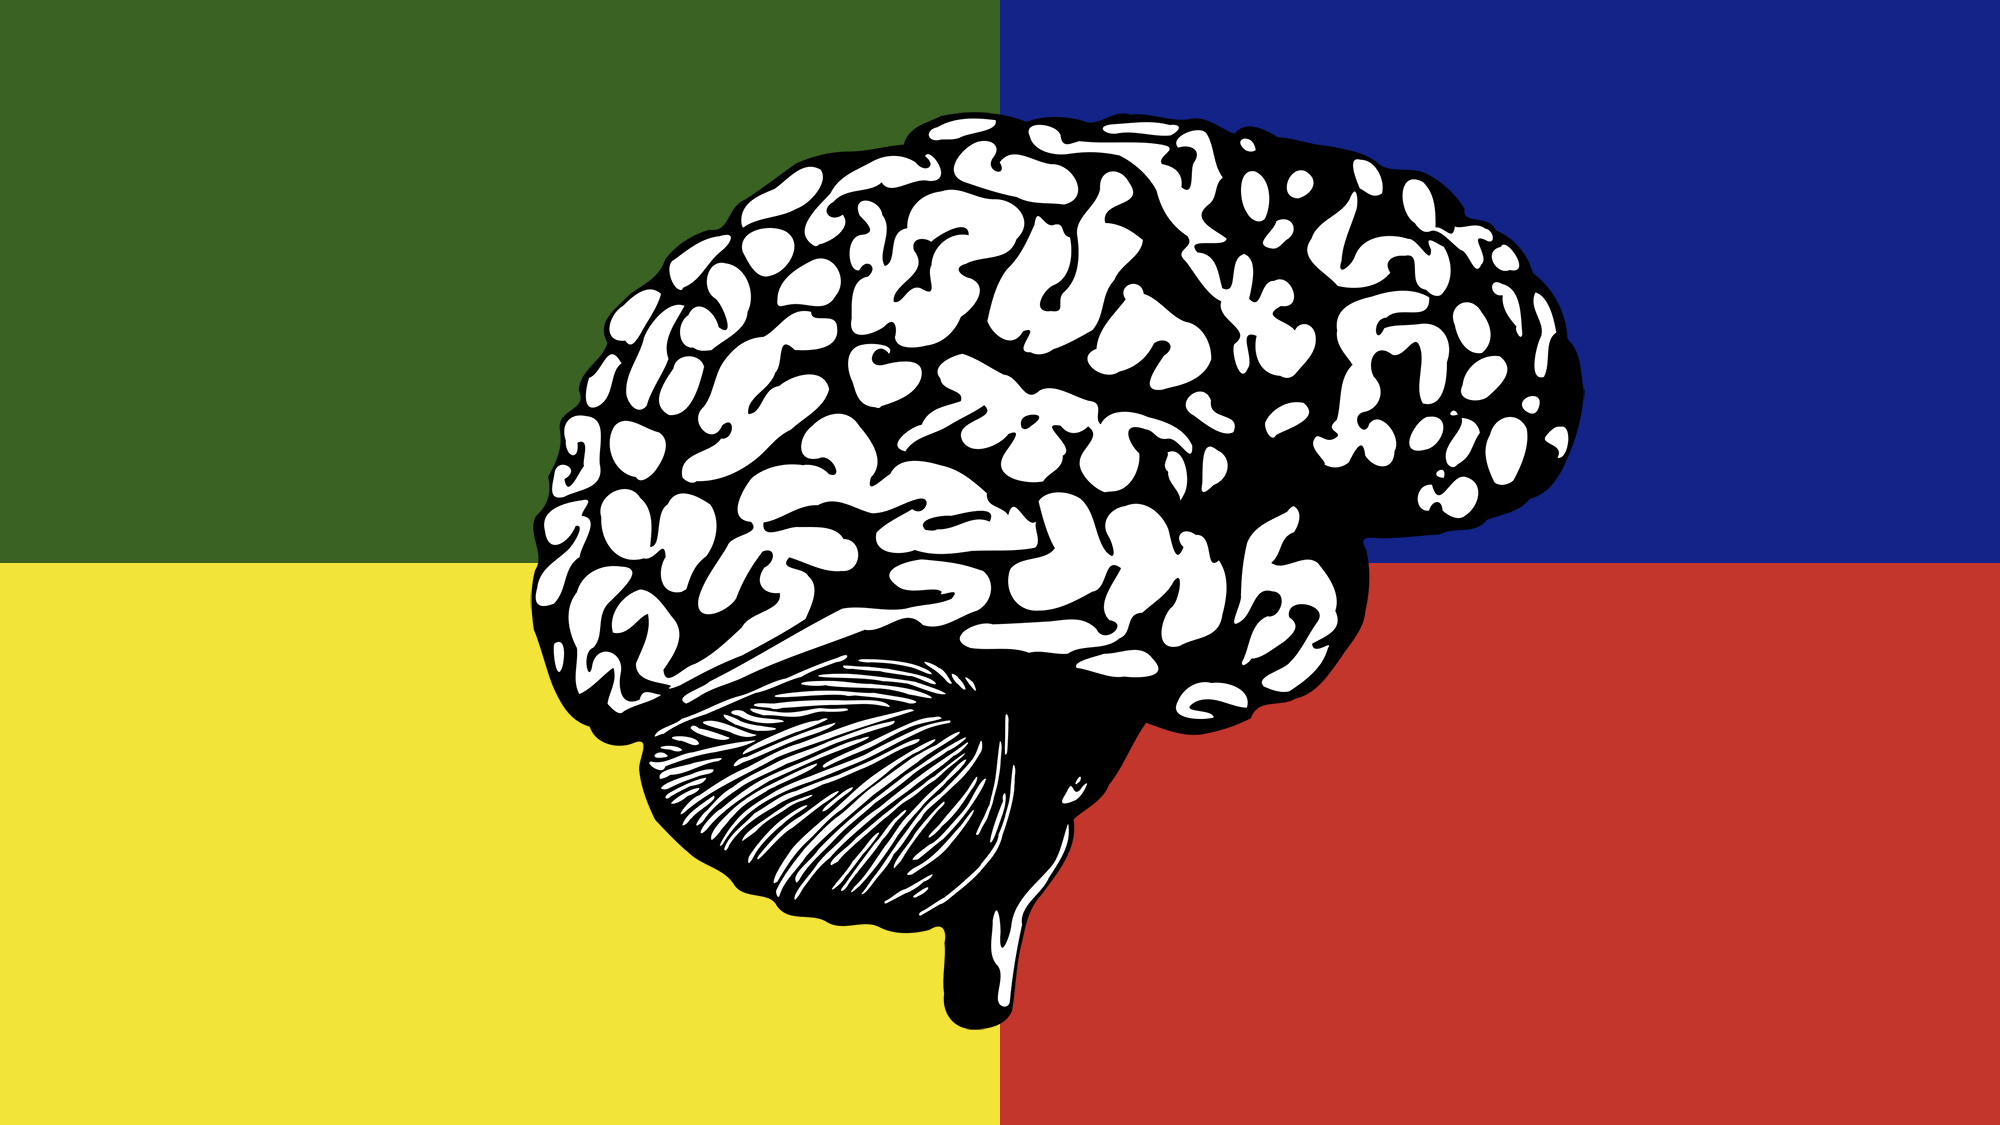 How Your Personality Type Relates to 4 Brain Systems - Big Think